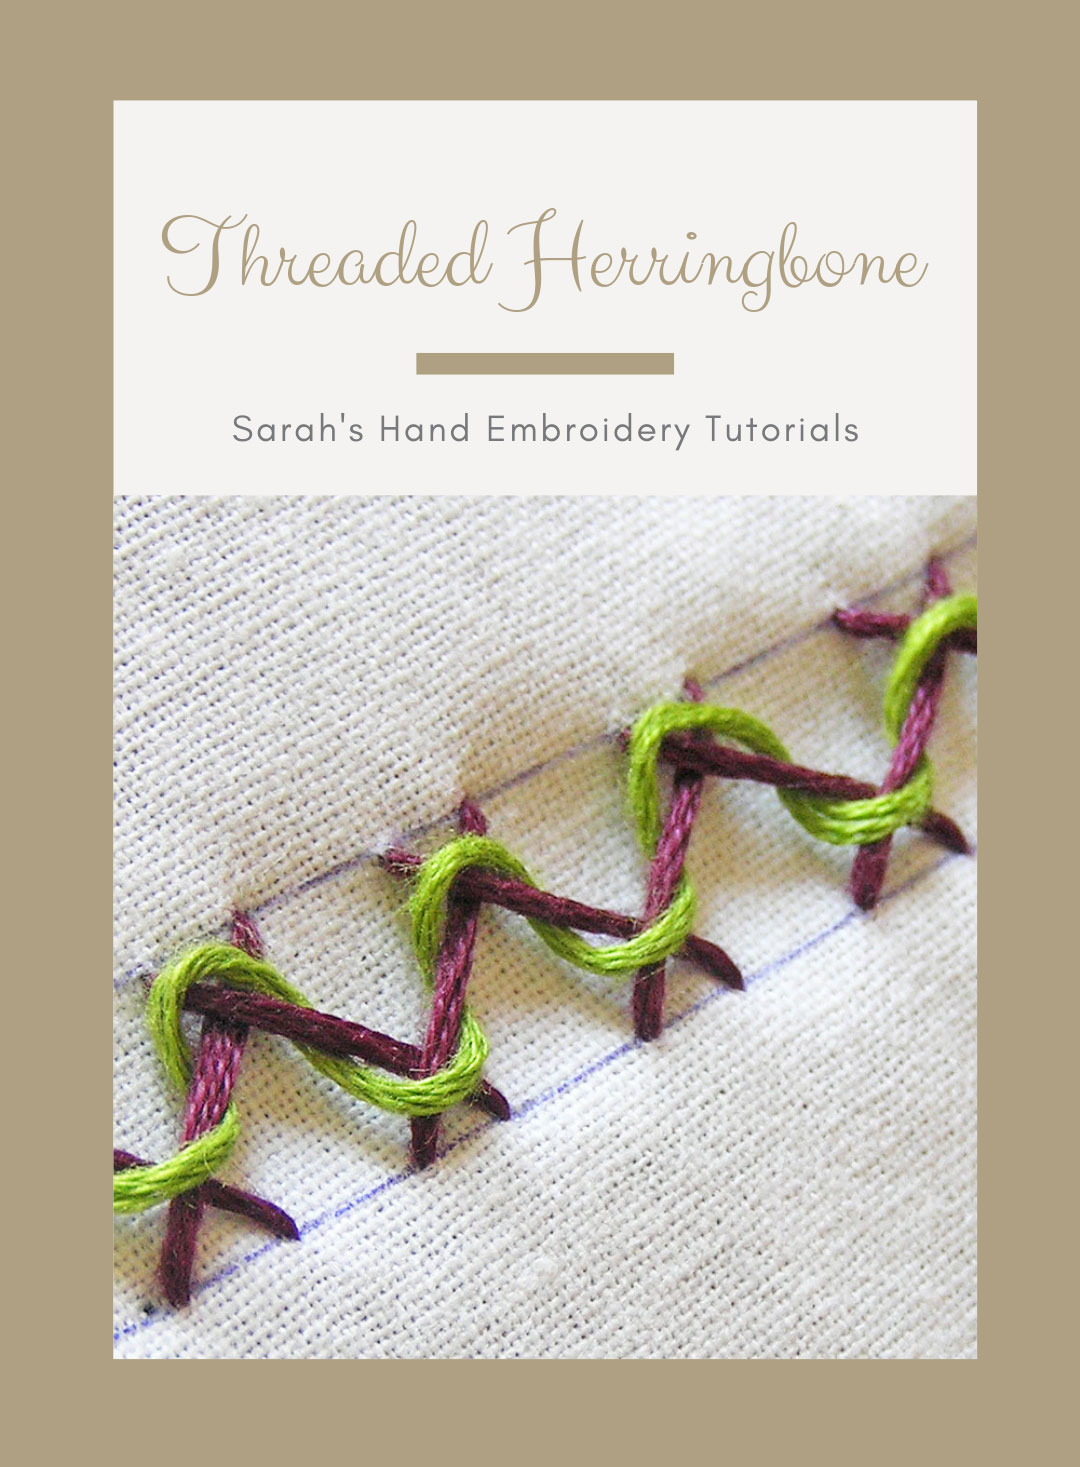 Threaded Herringbone Stitch – Sarah's Hand Embroidery Tutorials